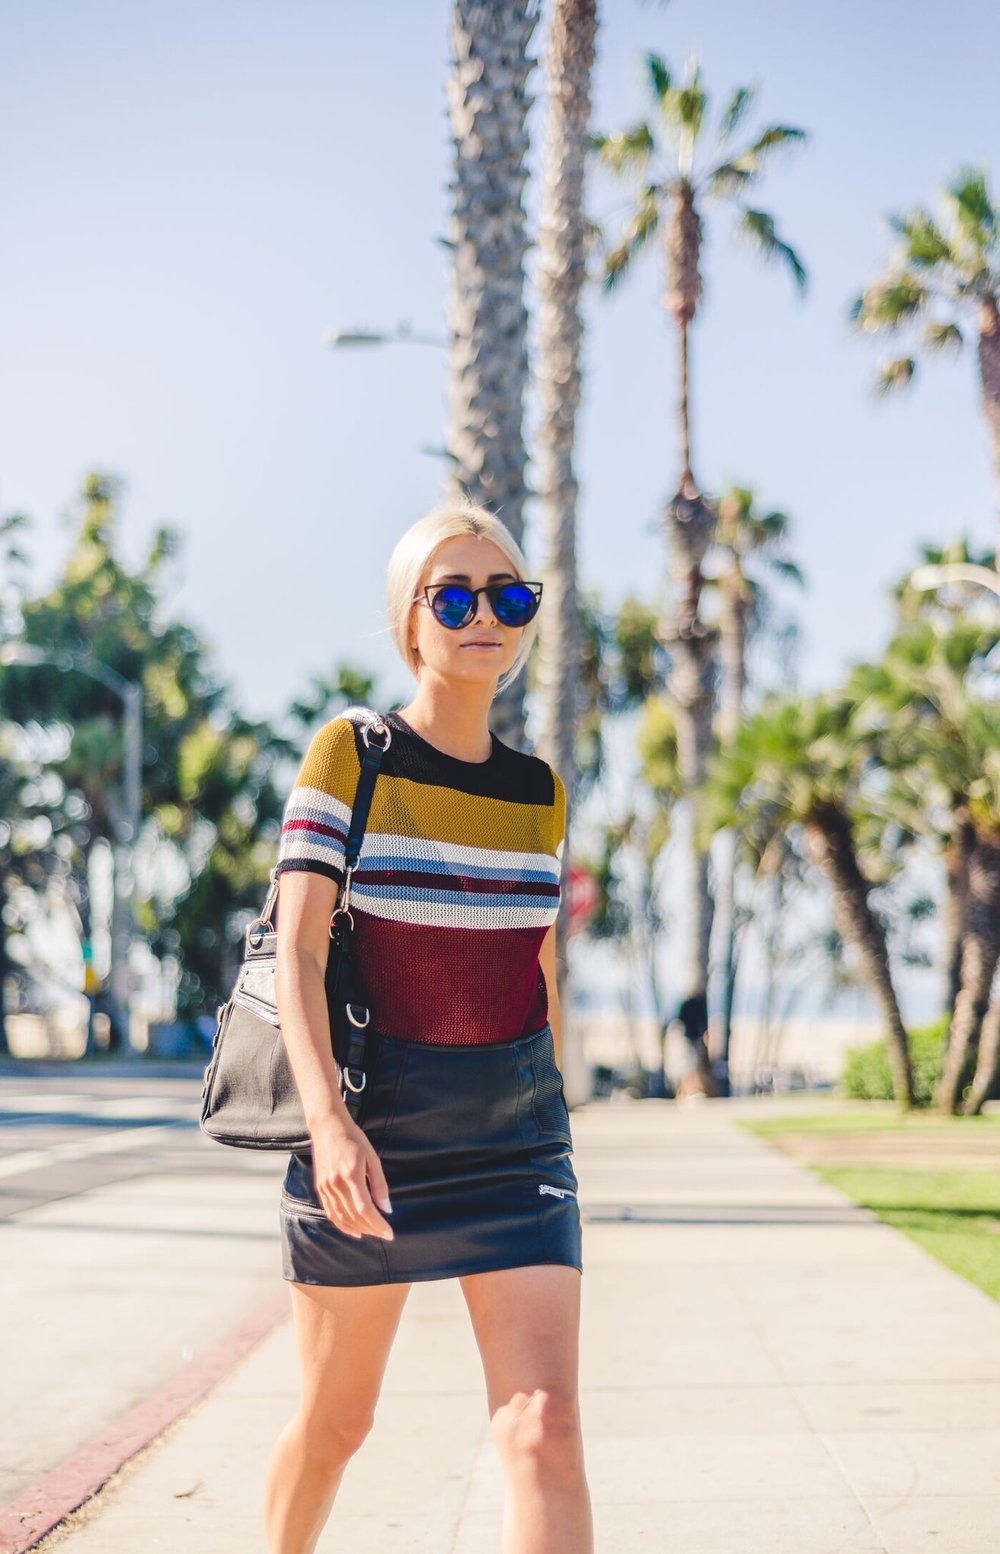 striped top_mesh top_savvy javvy_la fashion blogger_street style_ysl bag_saint laurent bag_vintage designer bags_tom ford bag_leather skirt_icy blonde hair_selwyn ramos_journey with javvy